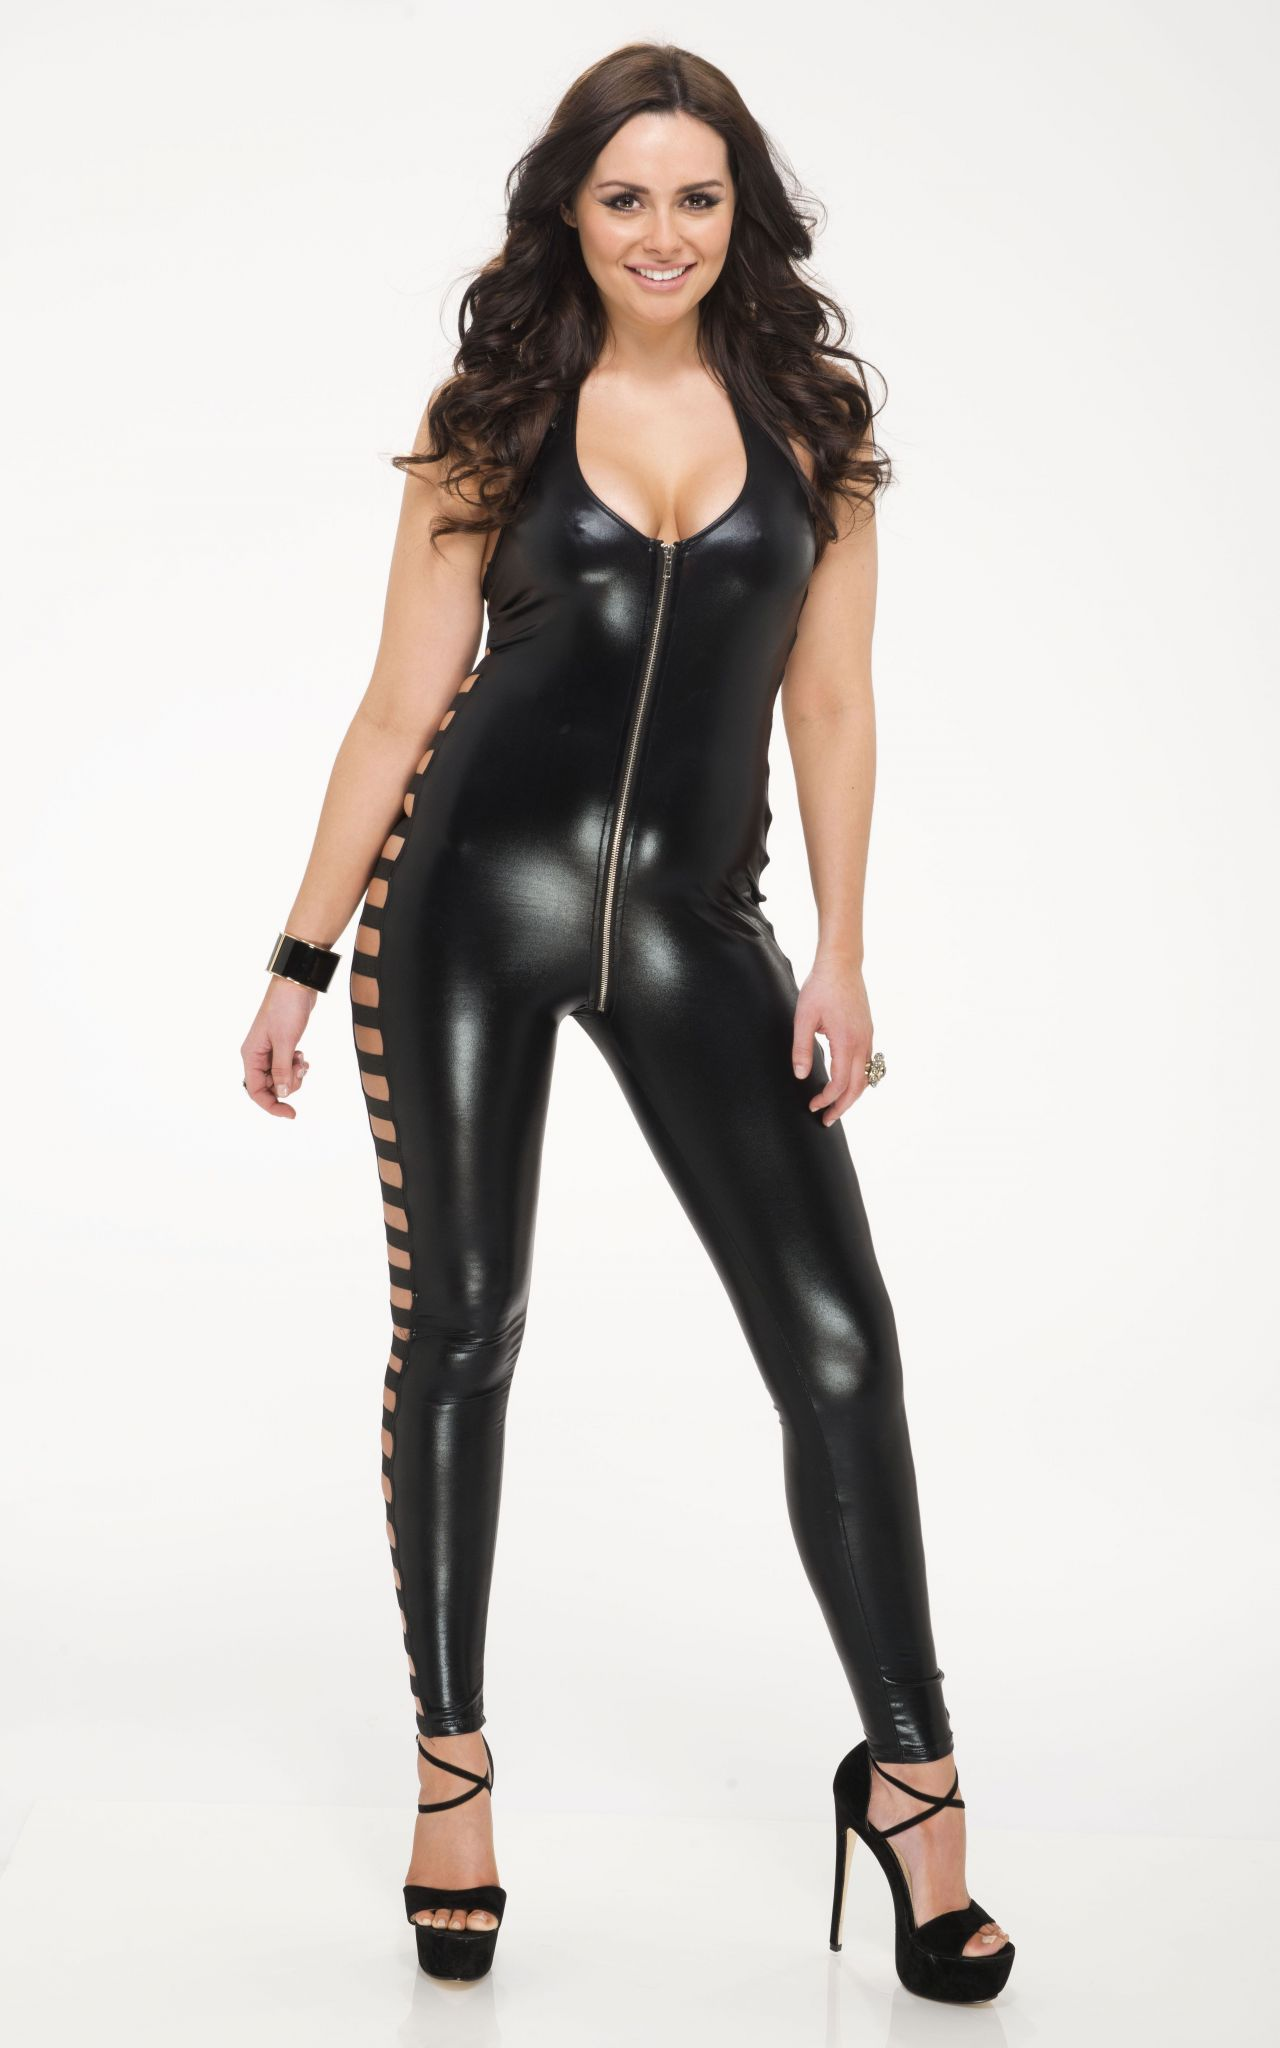 Kelsey-Beth Crossley in Latex - Dan Charity Photoshoot (2014)